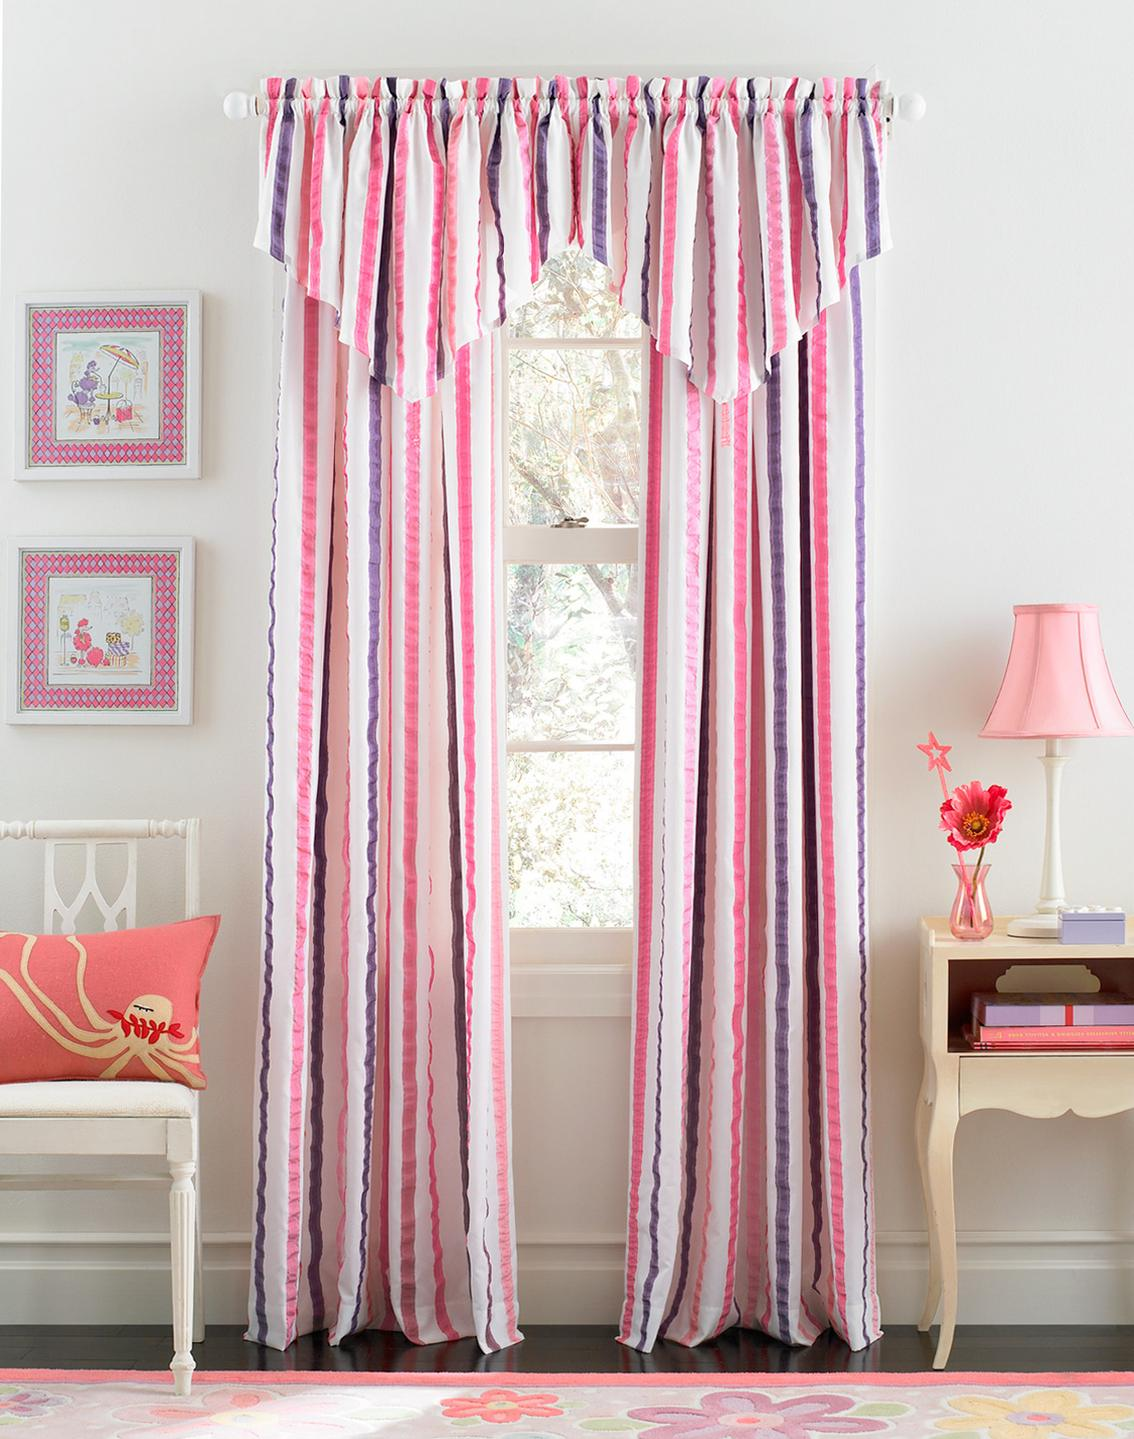 pink-and-white-striped-curtains